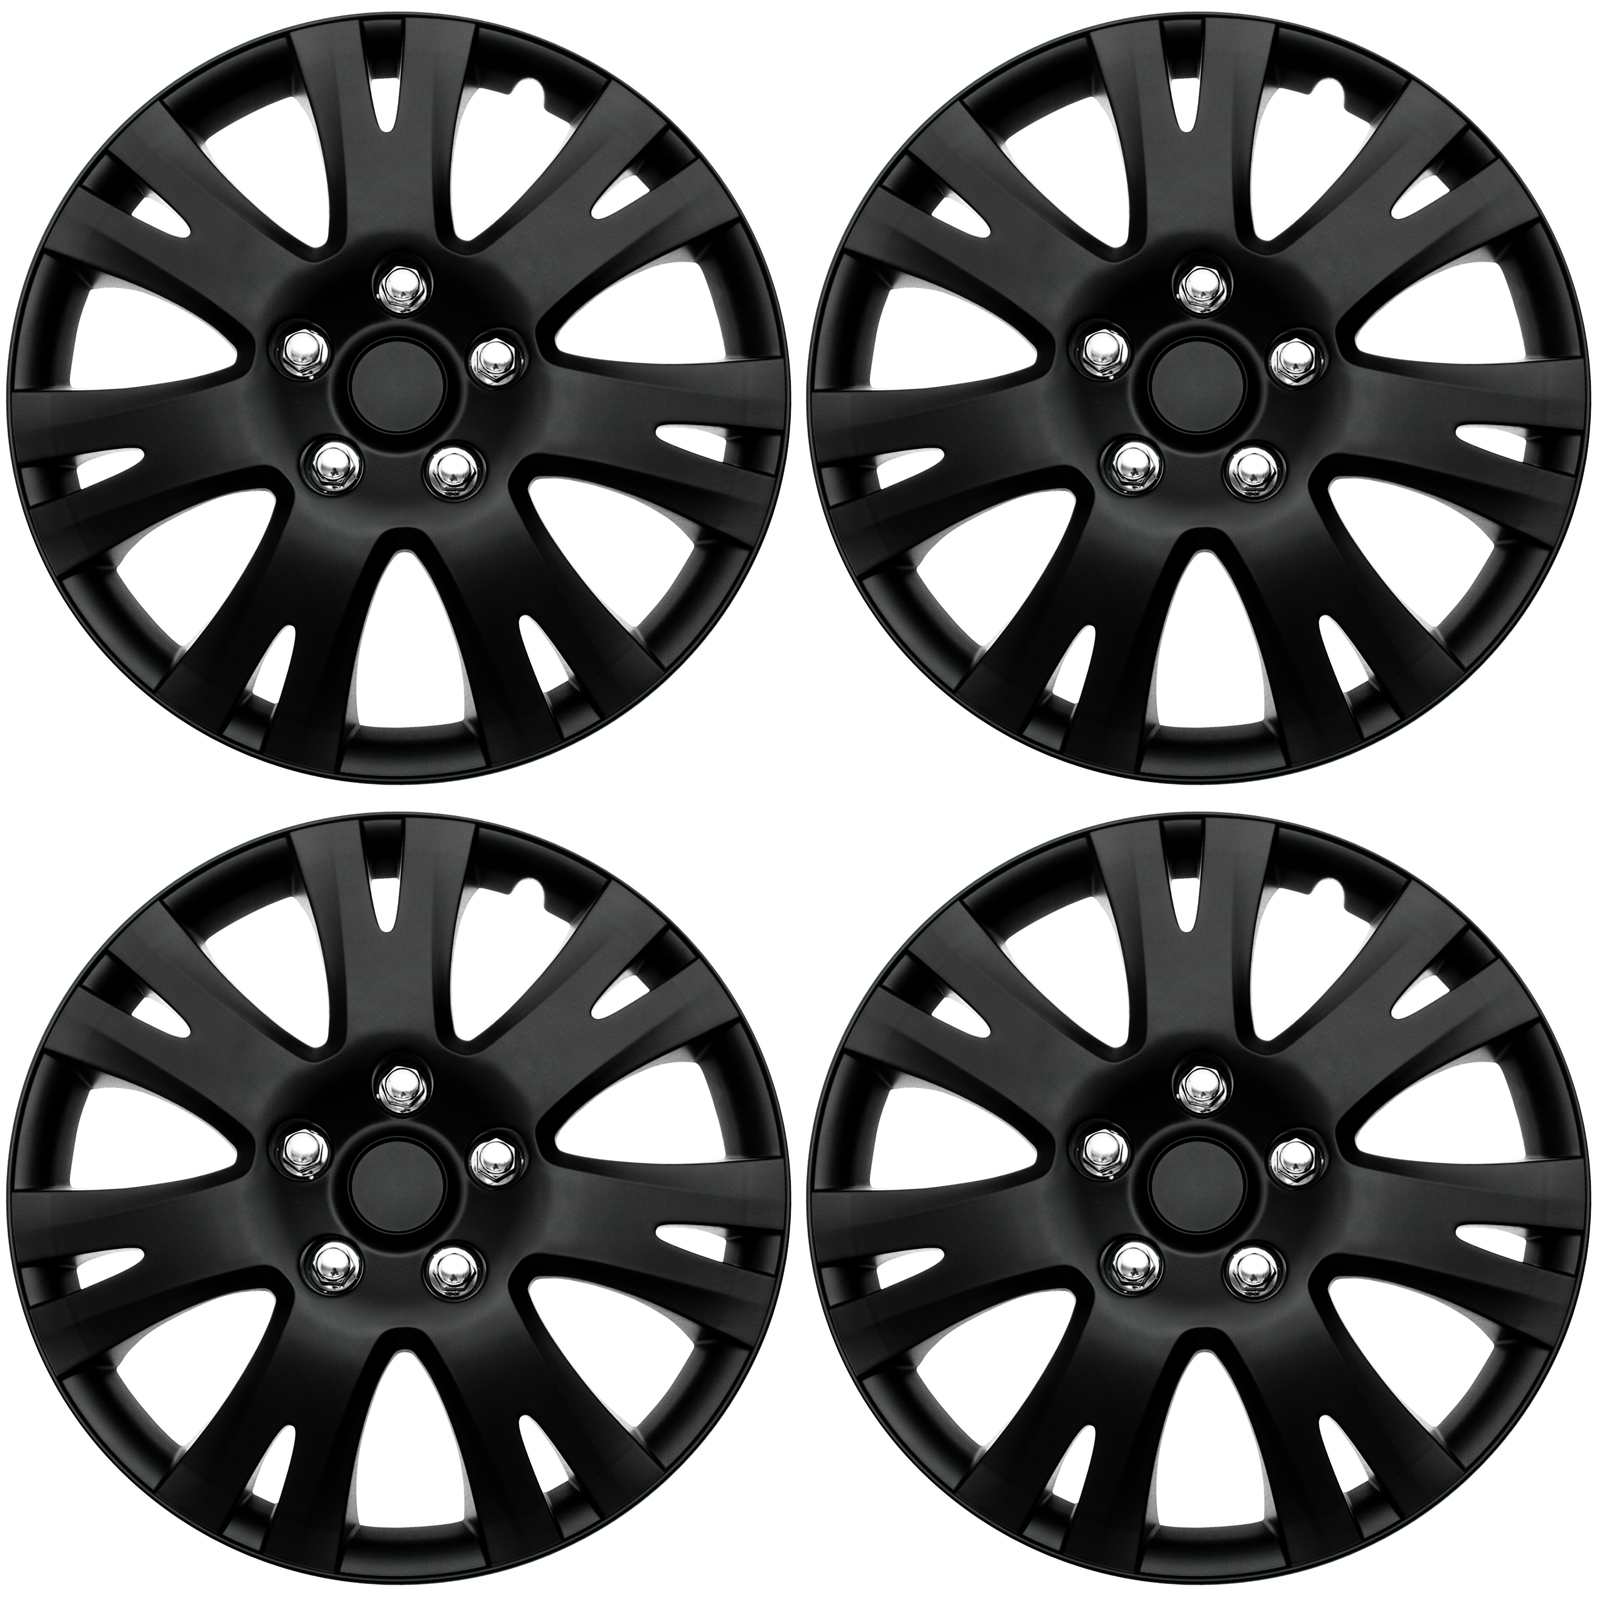 4 Pc Set Of 16 Quot Matte Black Hub Caps For Oem Steel Wheel